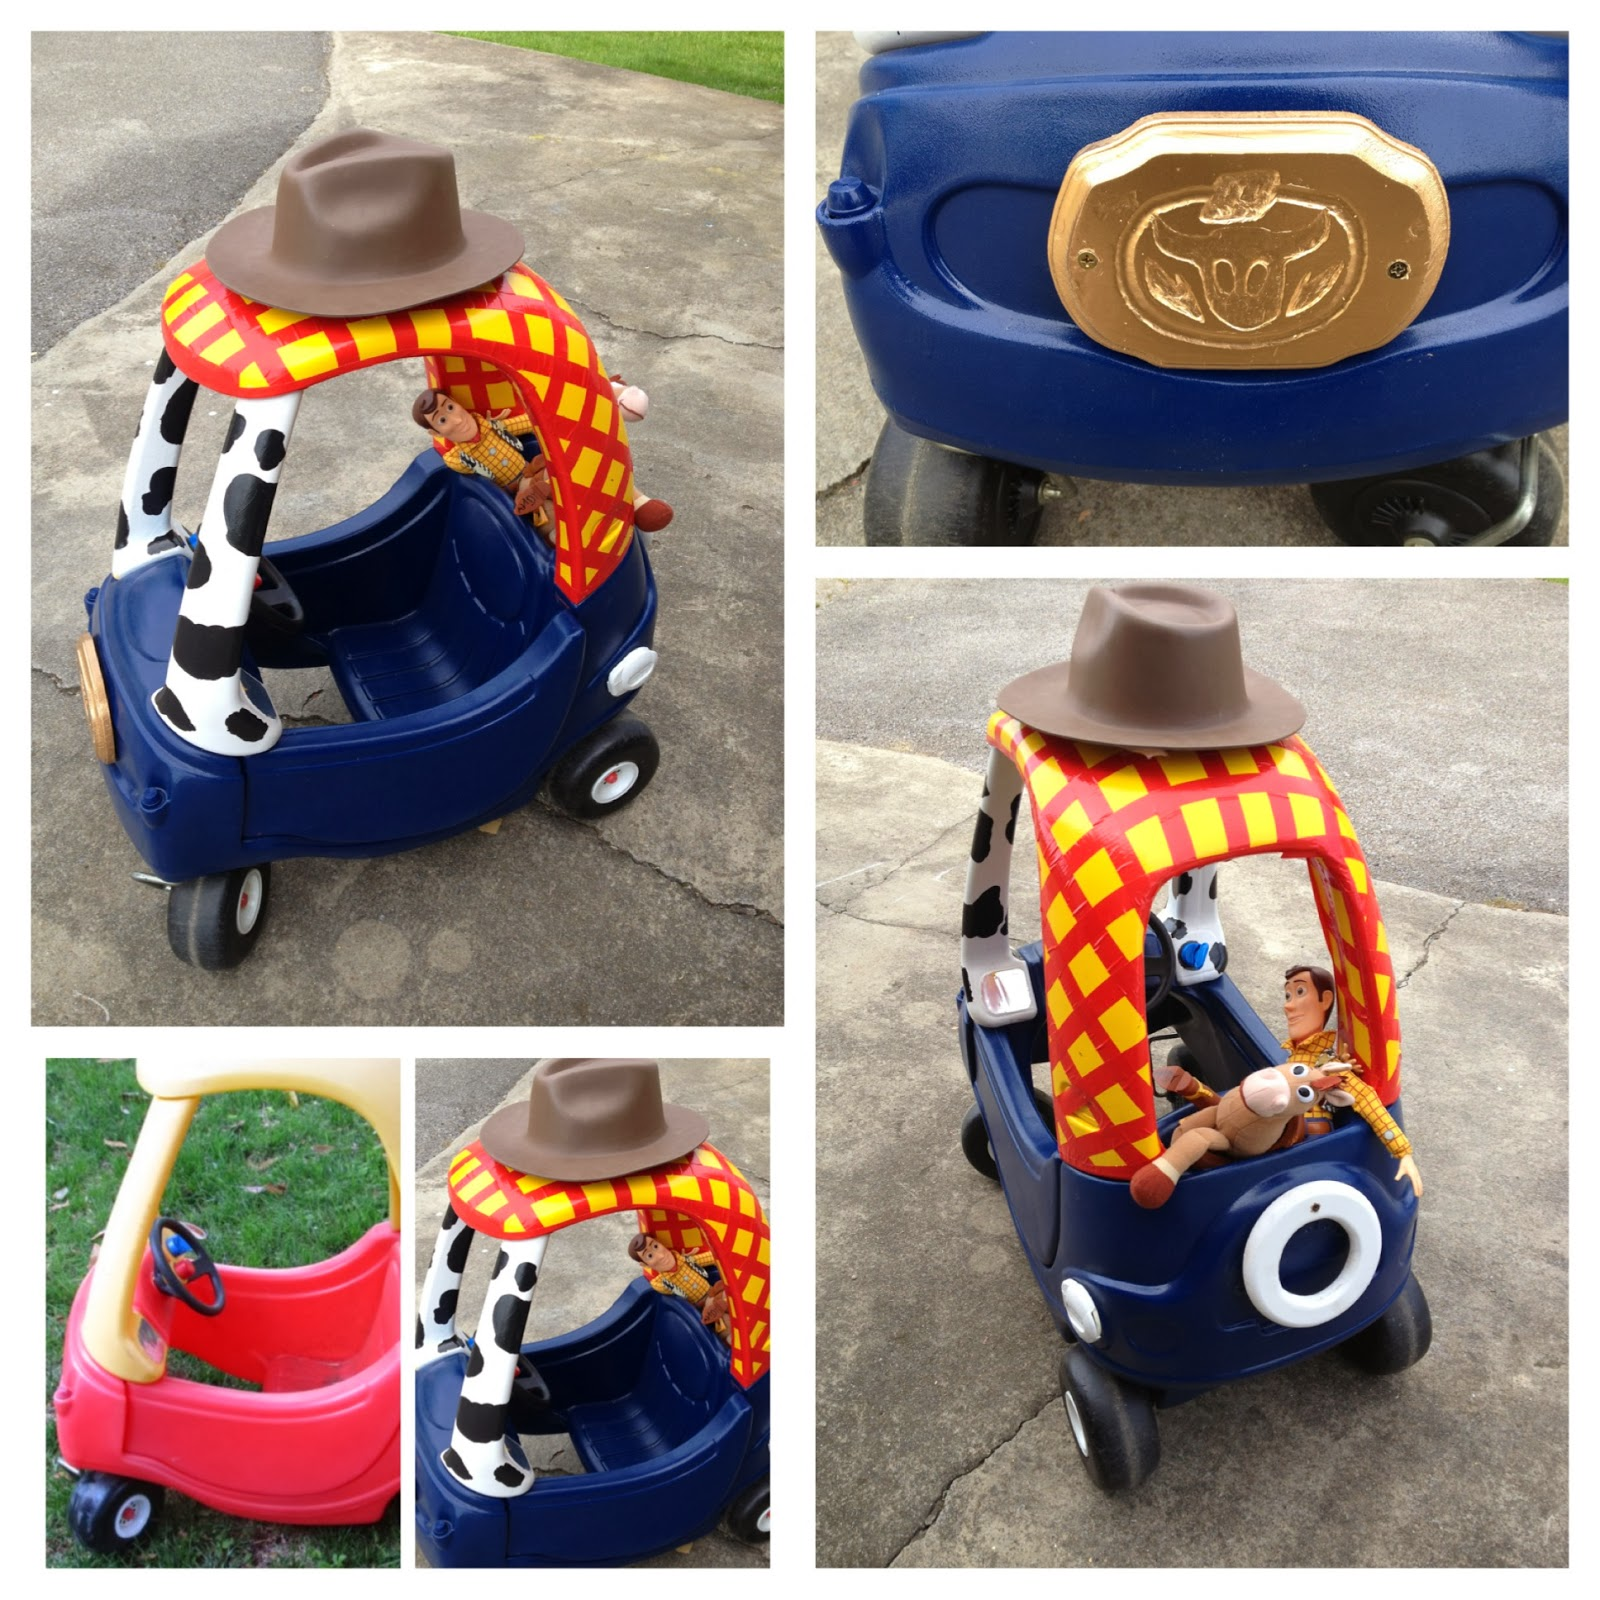 Geek squad cozy coupe too funny and cute Find this Pin and more on Holidays- Halloween by Joel&Eva Wissner. Geek Squad car made from Little Tykes Cozy Coupe. ideas for cozy coupe makeover, this would be great for Halloween.